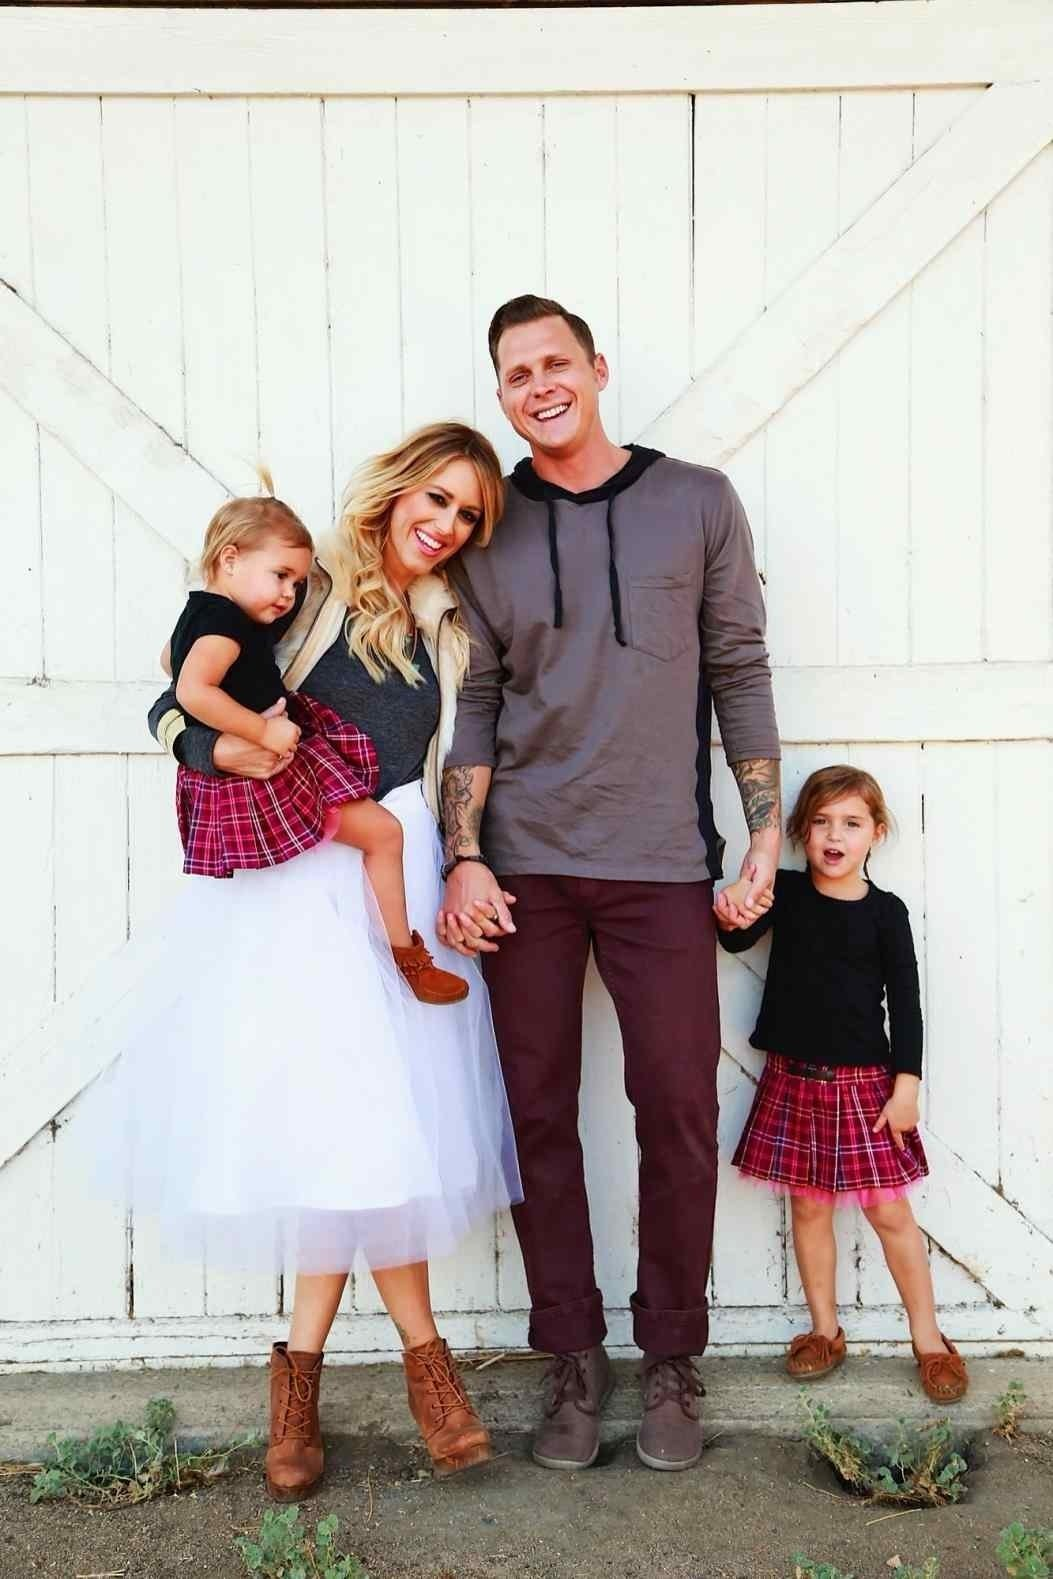 10 Awesome Outfit Ideas For Family Pictures picture outfit ideas chemineewebsite photo what to wear those photo 1